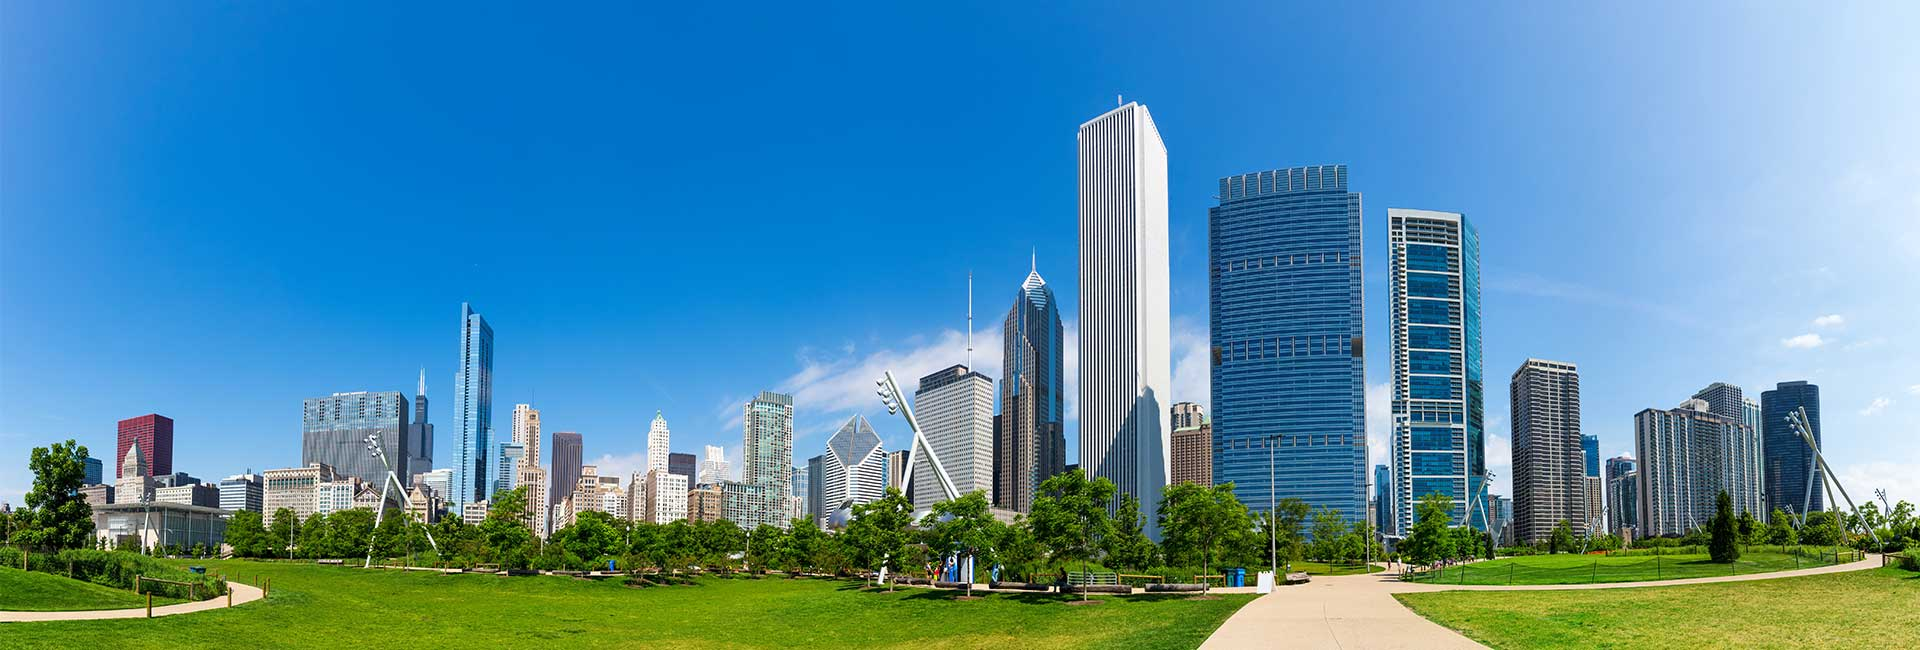 Cheap Flights From Philadelphia To Chicago, PHL To CHI Flights